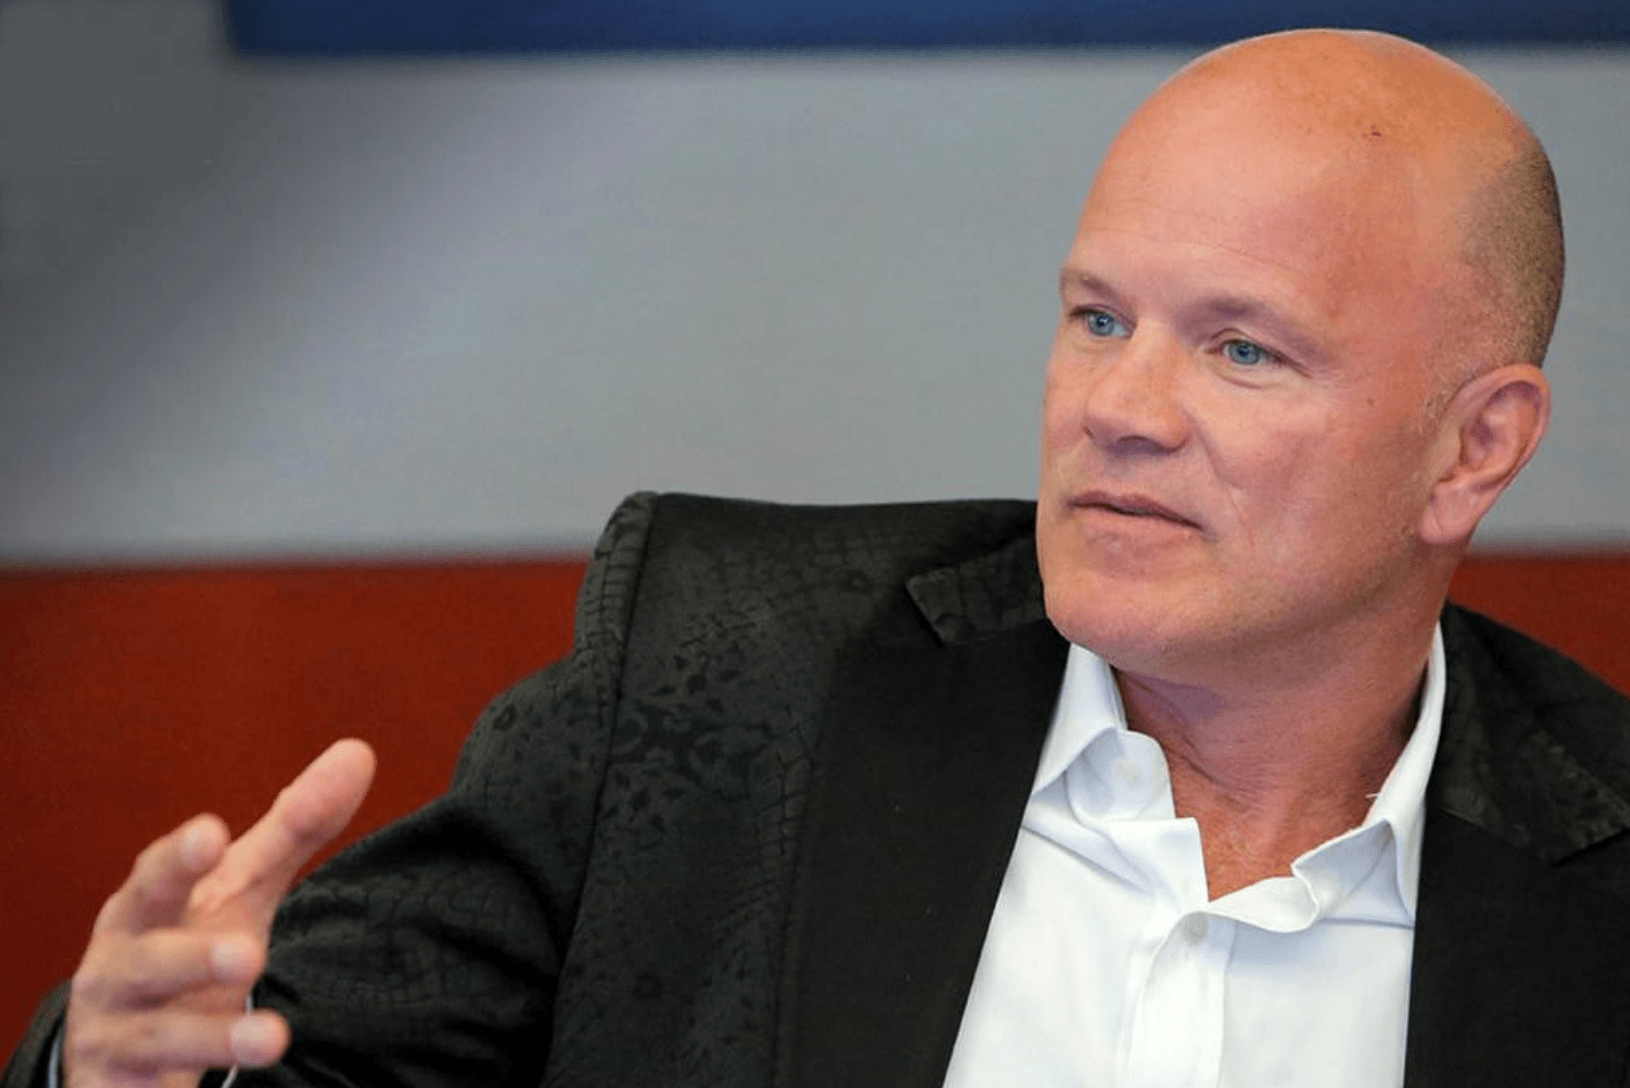 Billionaire Mike Novogratz Says 85% of His Net Worth Is in Crypto, Expects $ETH 'To Go a Lot Higher'